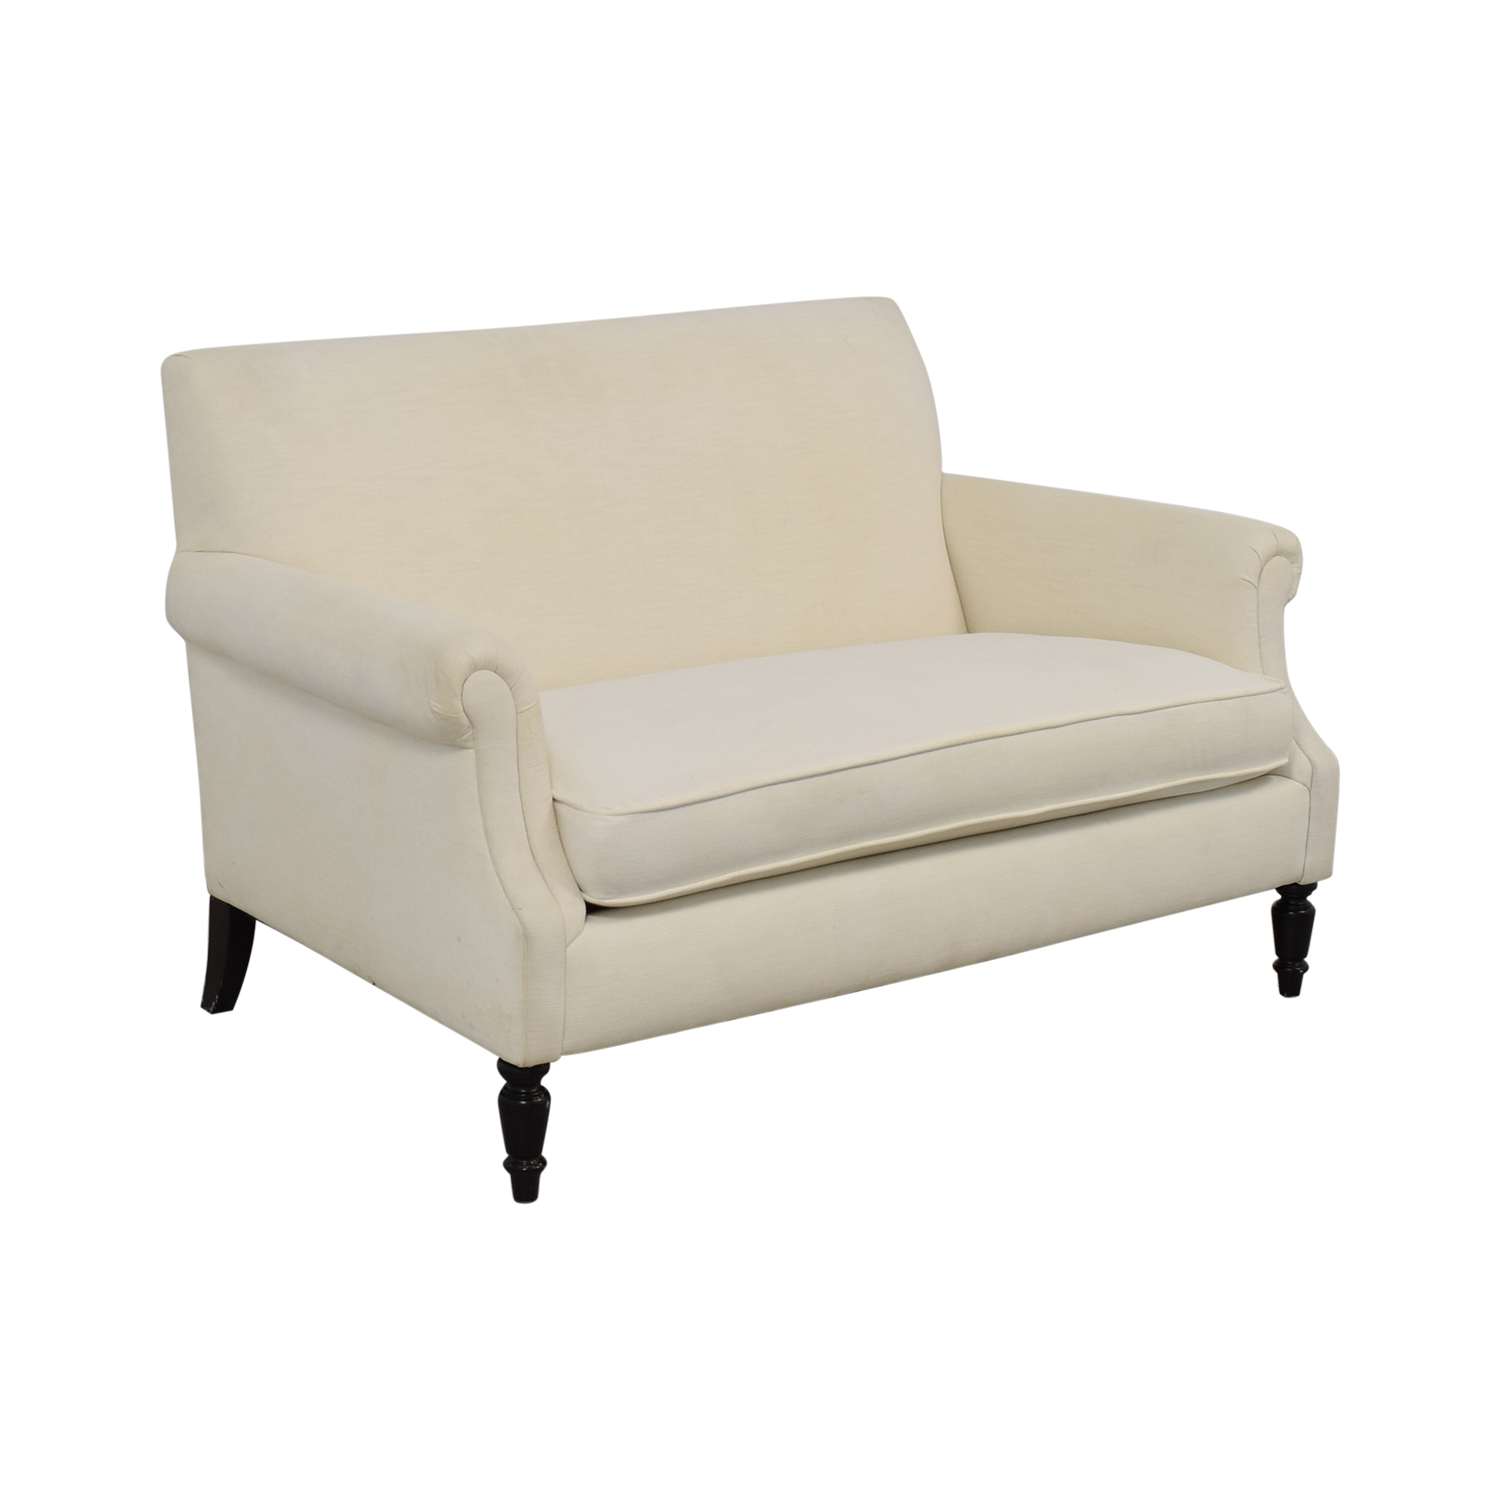 Crate & Barrel Roll Arm Loveseat / Sofas